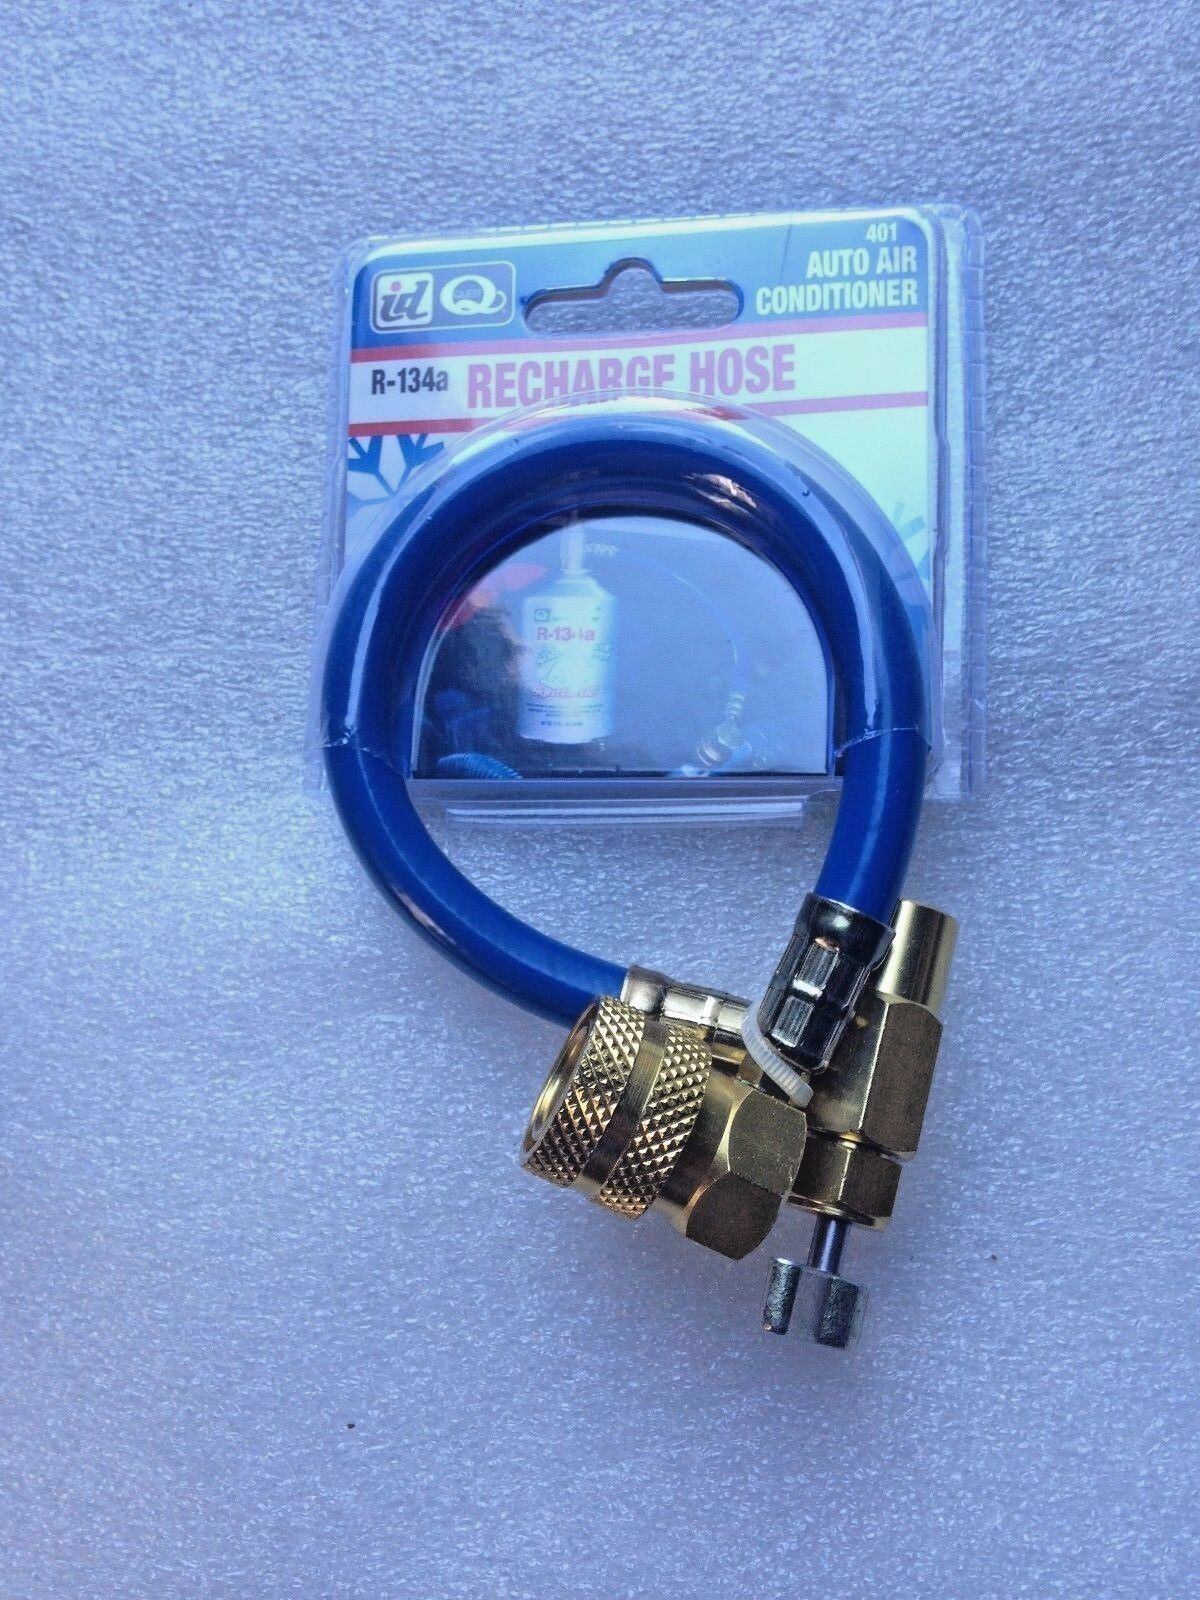 Interdynamics 401 R-134a Recharge Hose (pack of 11)